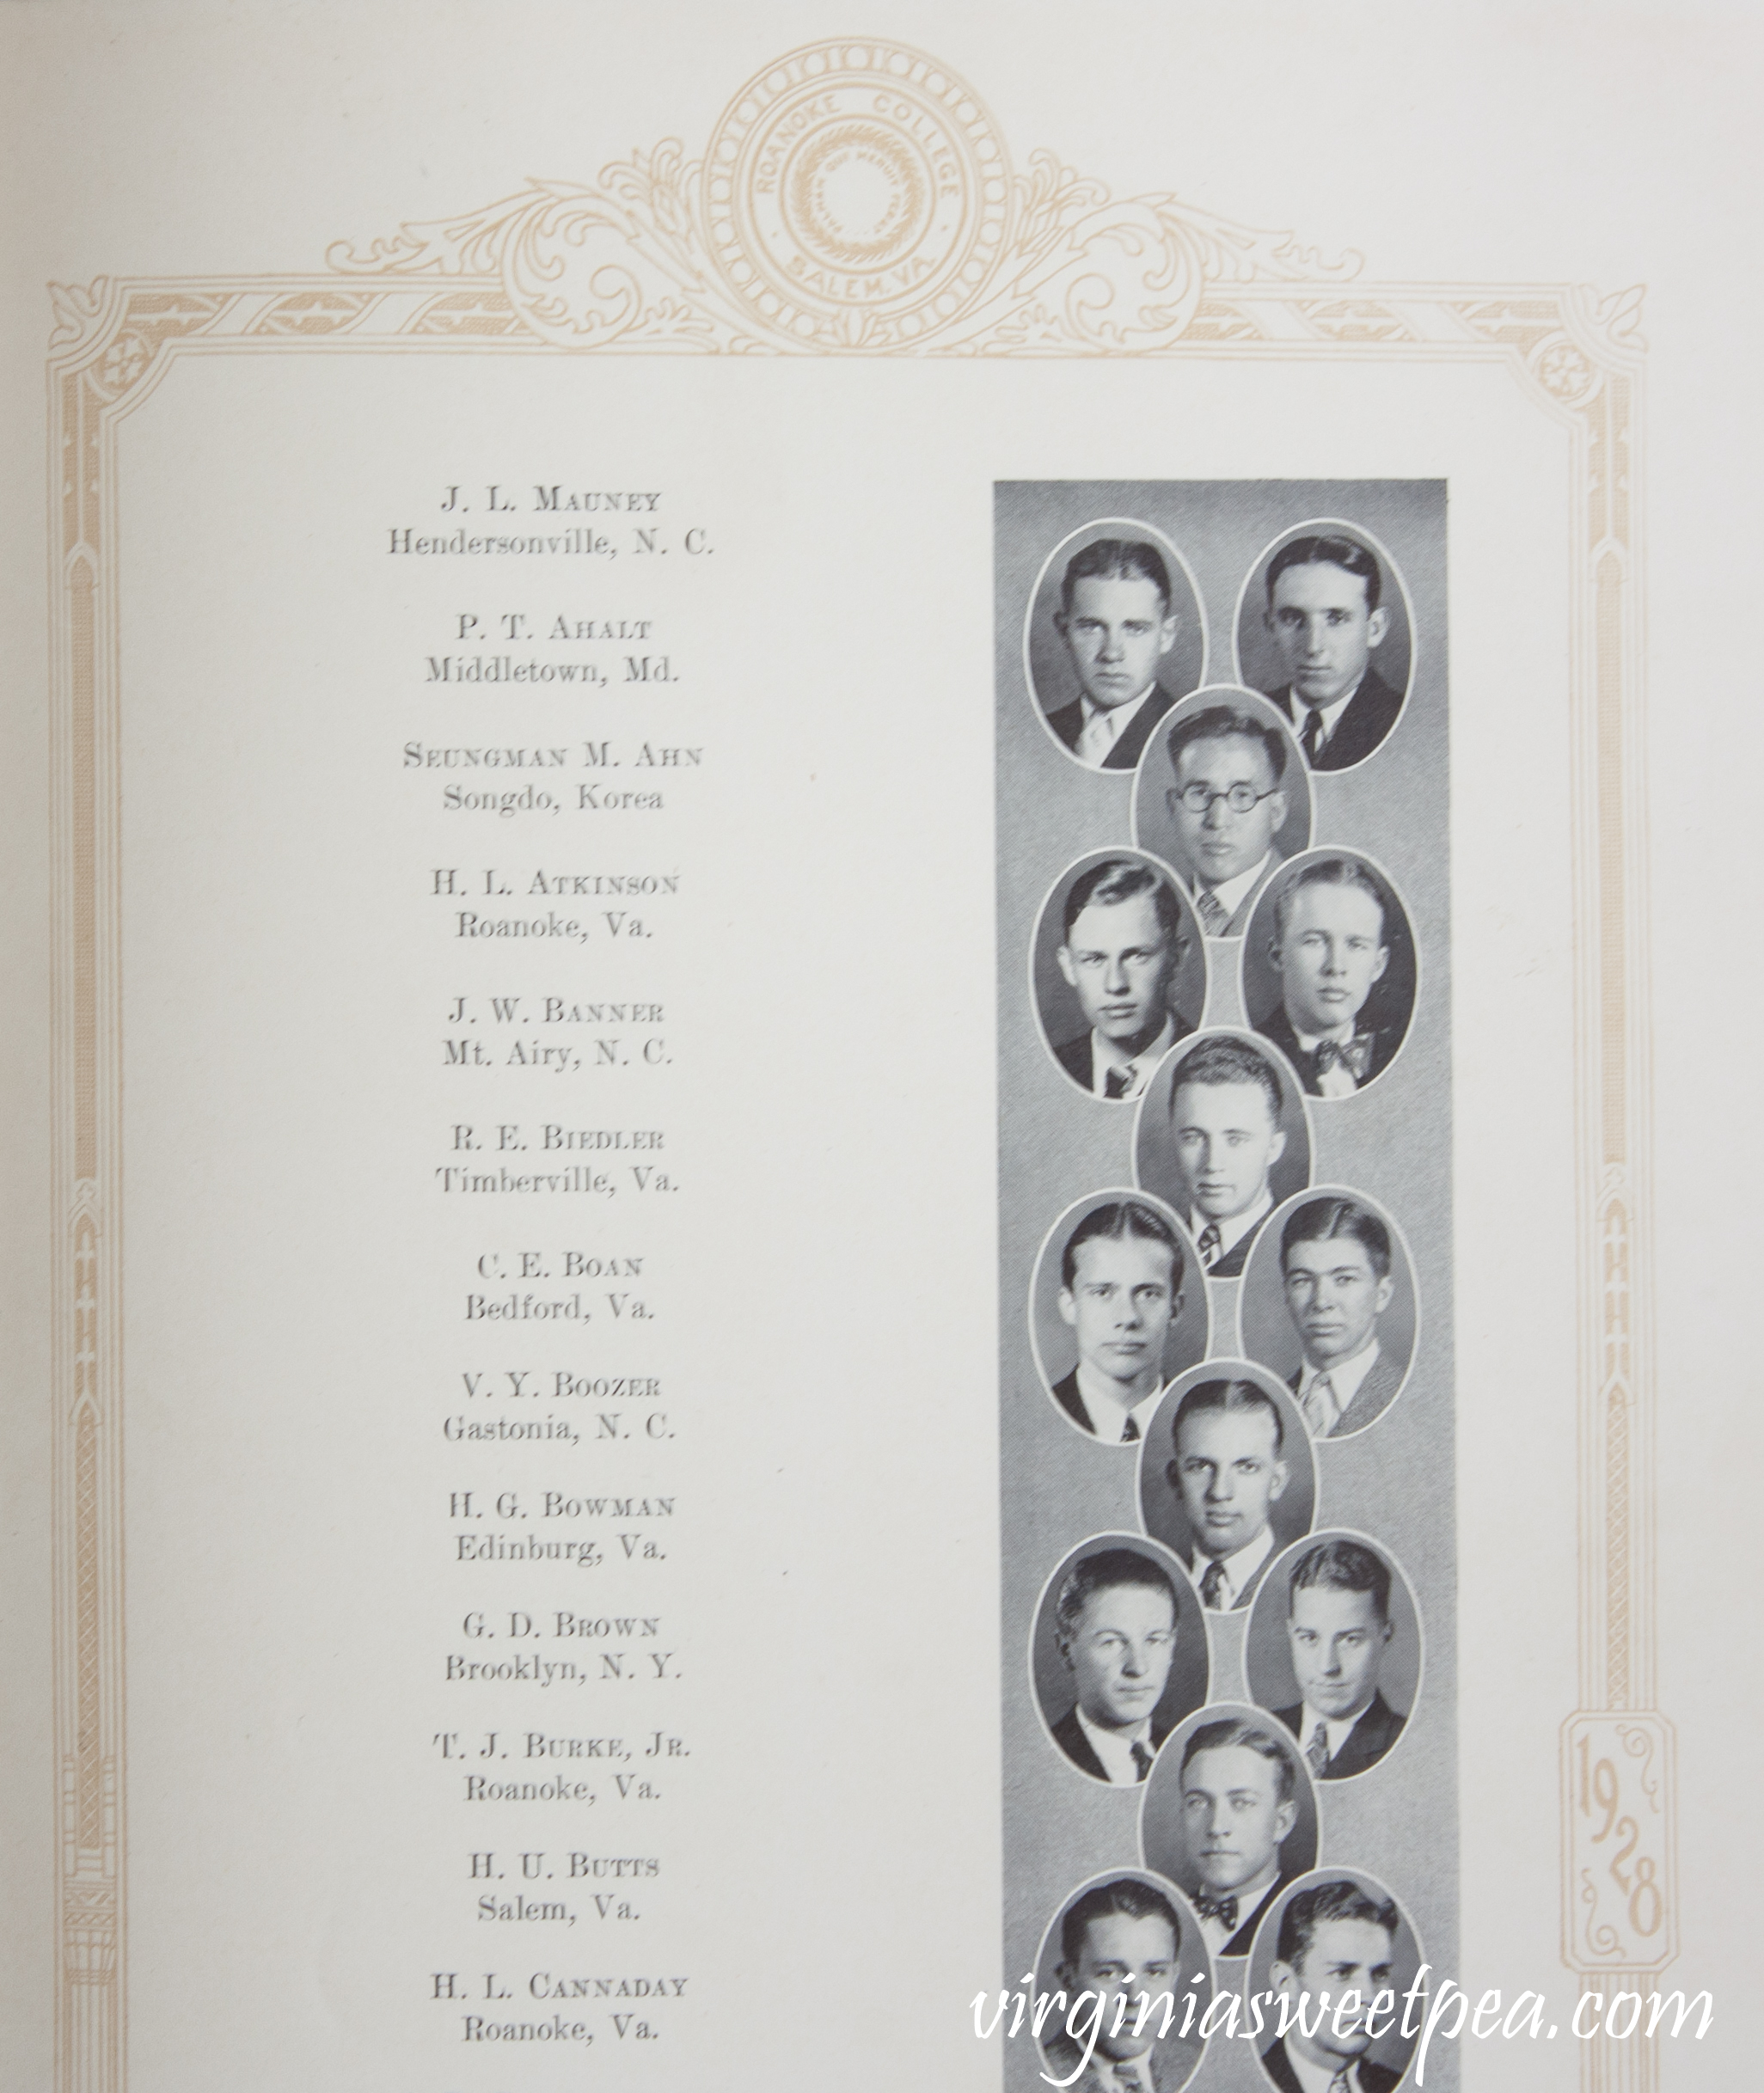 Paul E. Ahalt in 1928 Roanoke College Yearbook